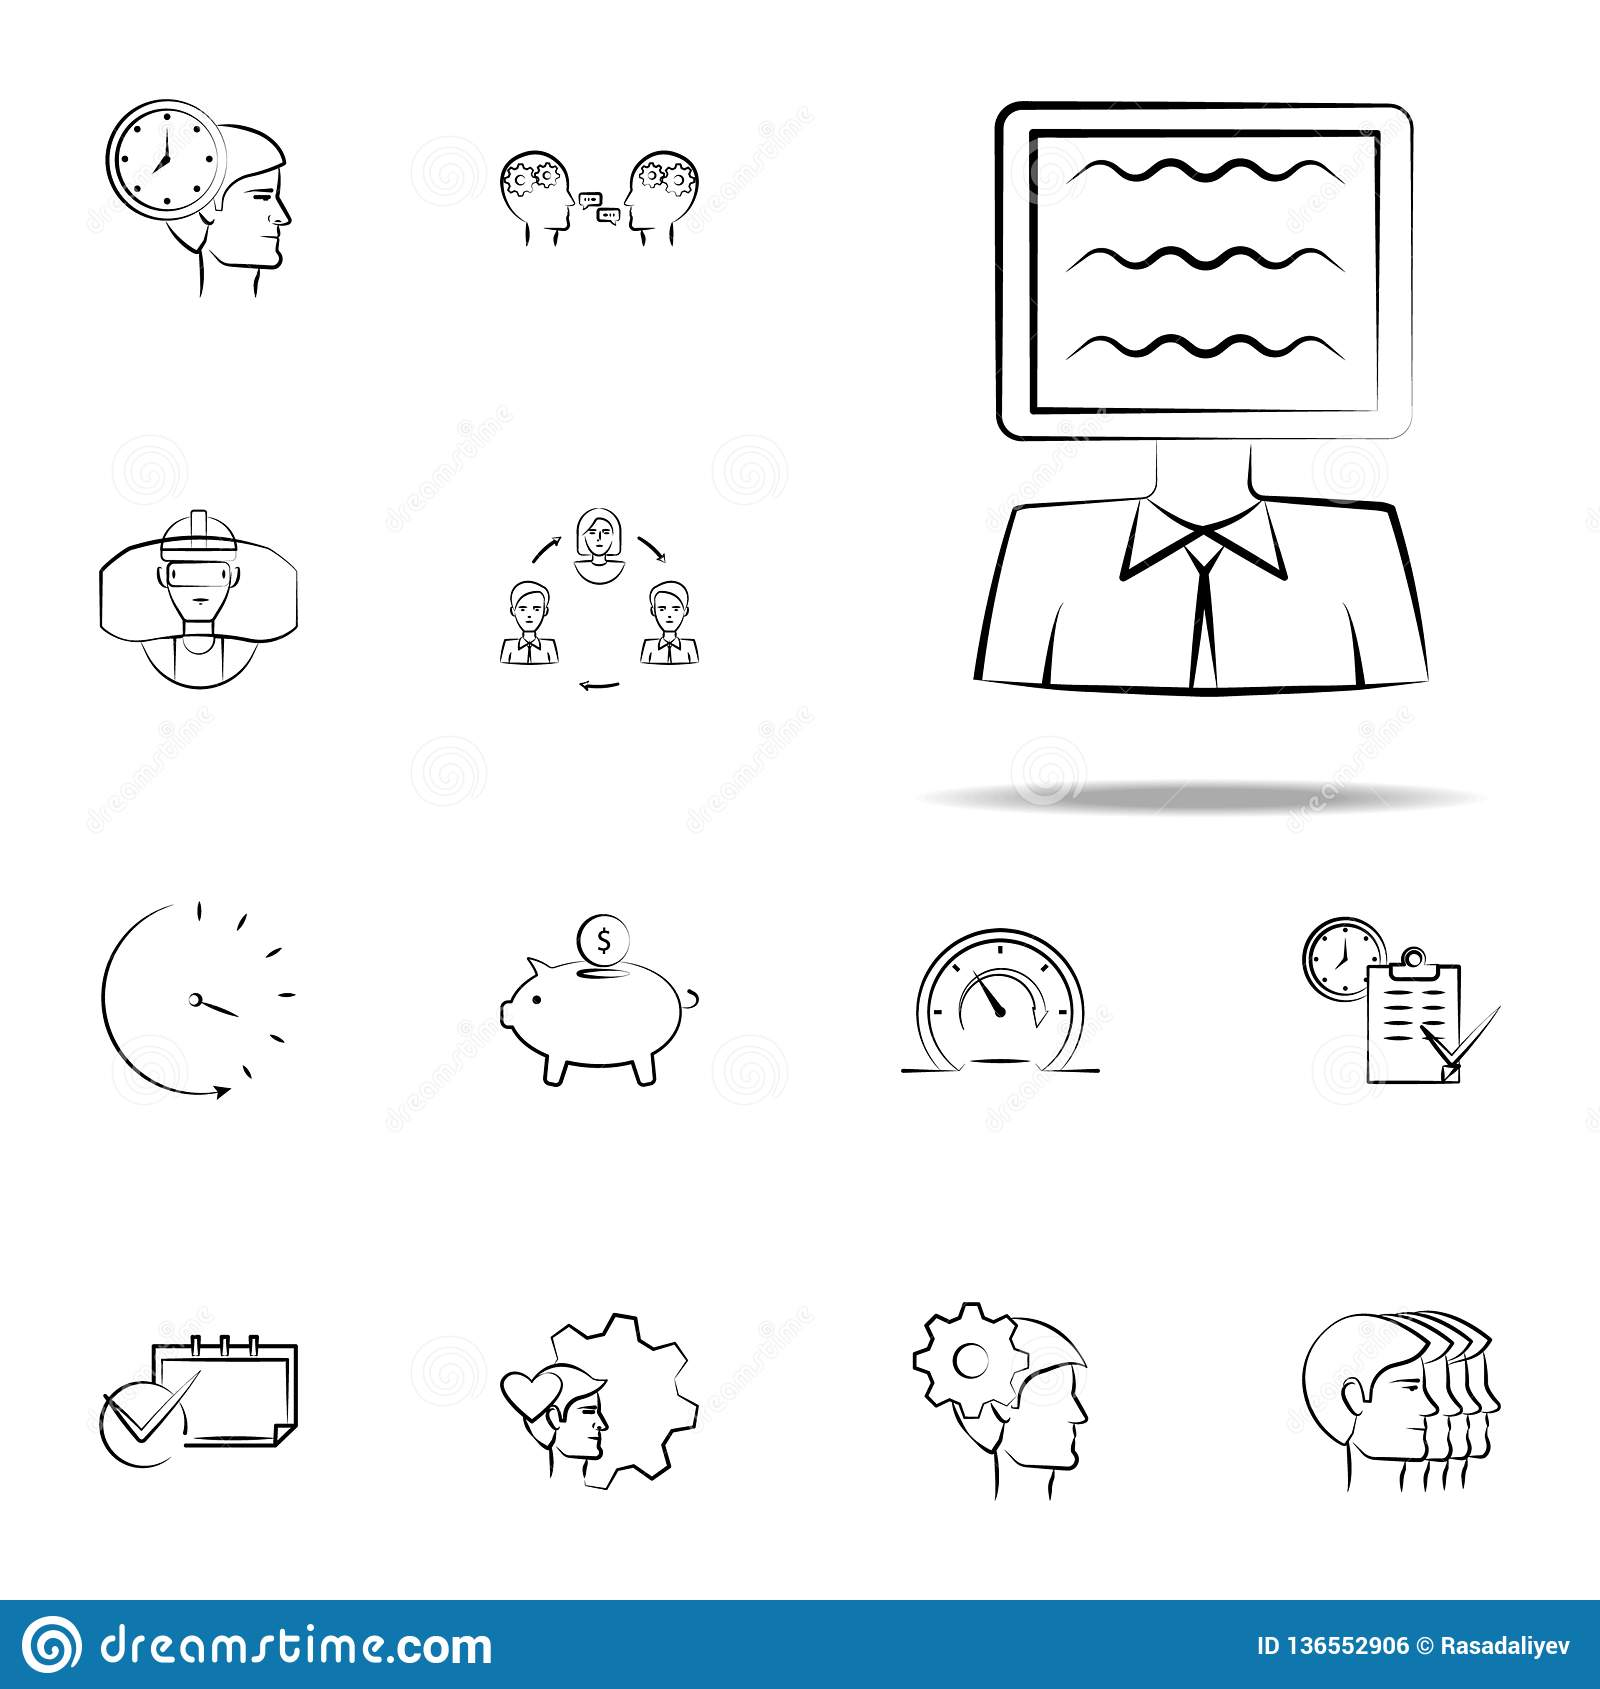 ad, person, tv hand drawn icon. business icons universal set for web and mobile